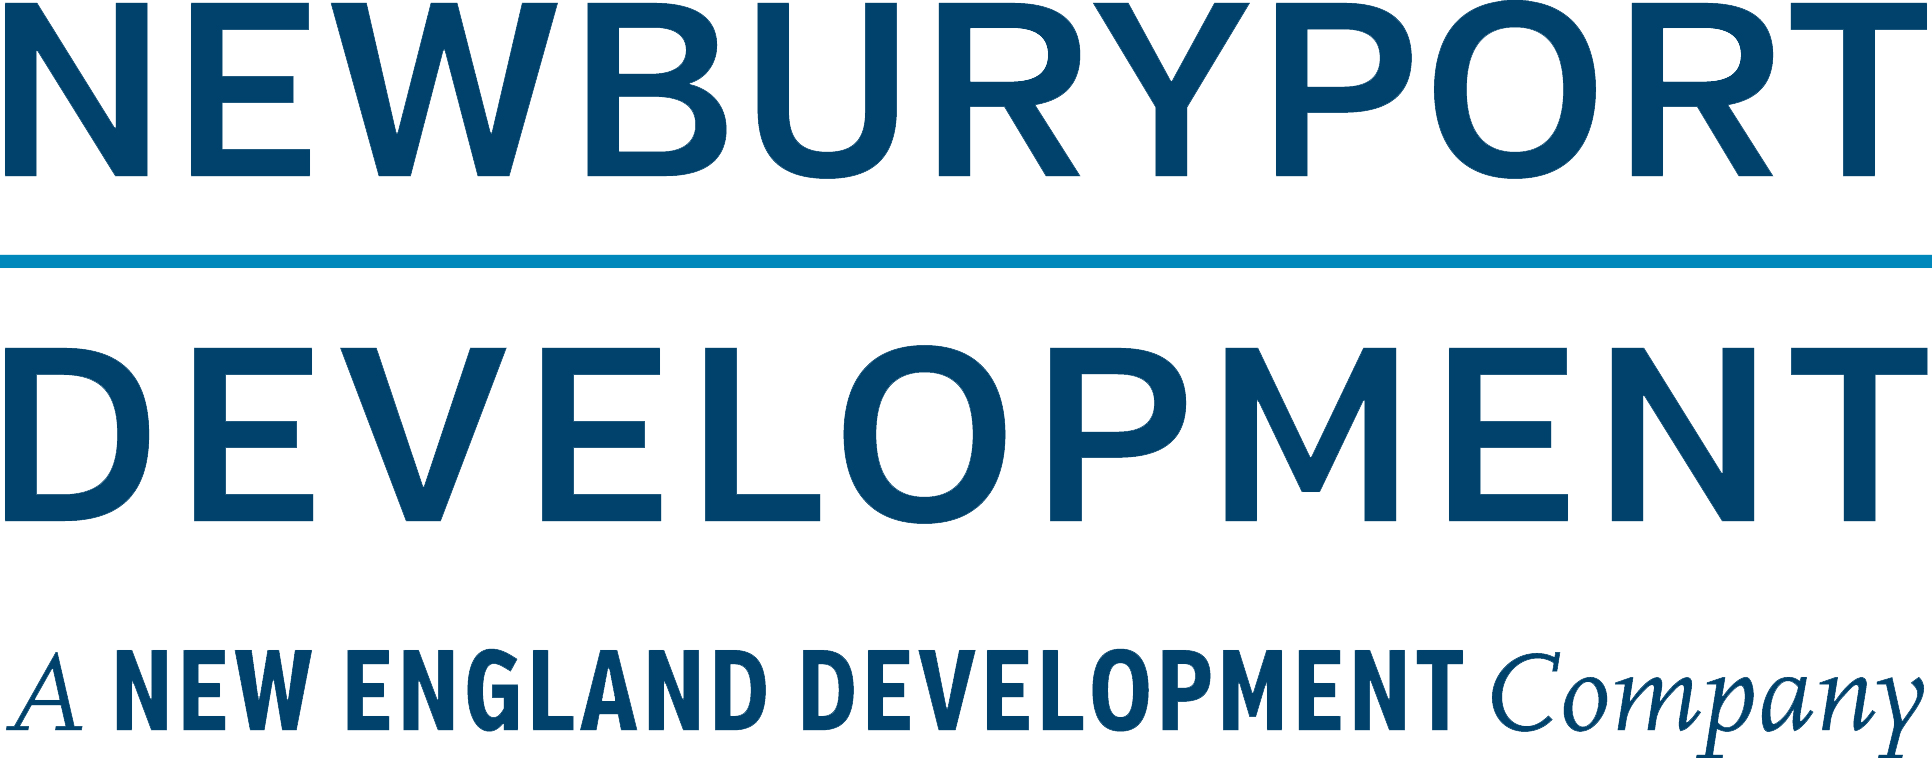 Newburyport Development